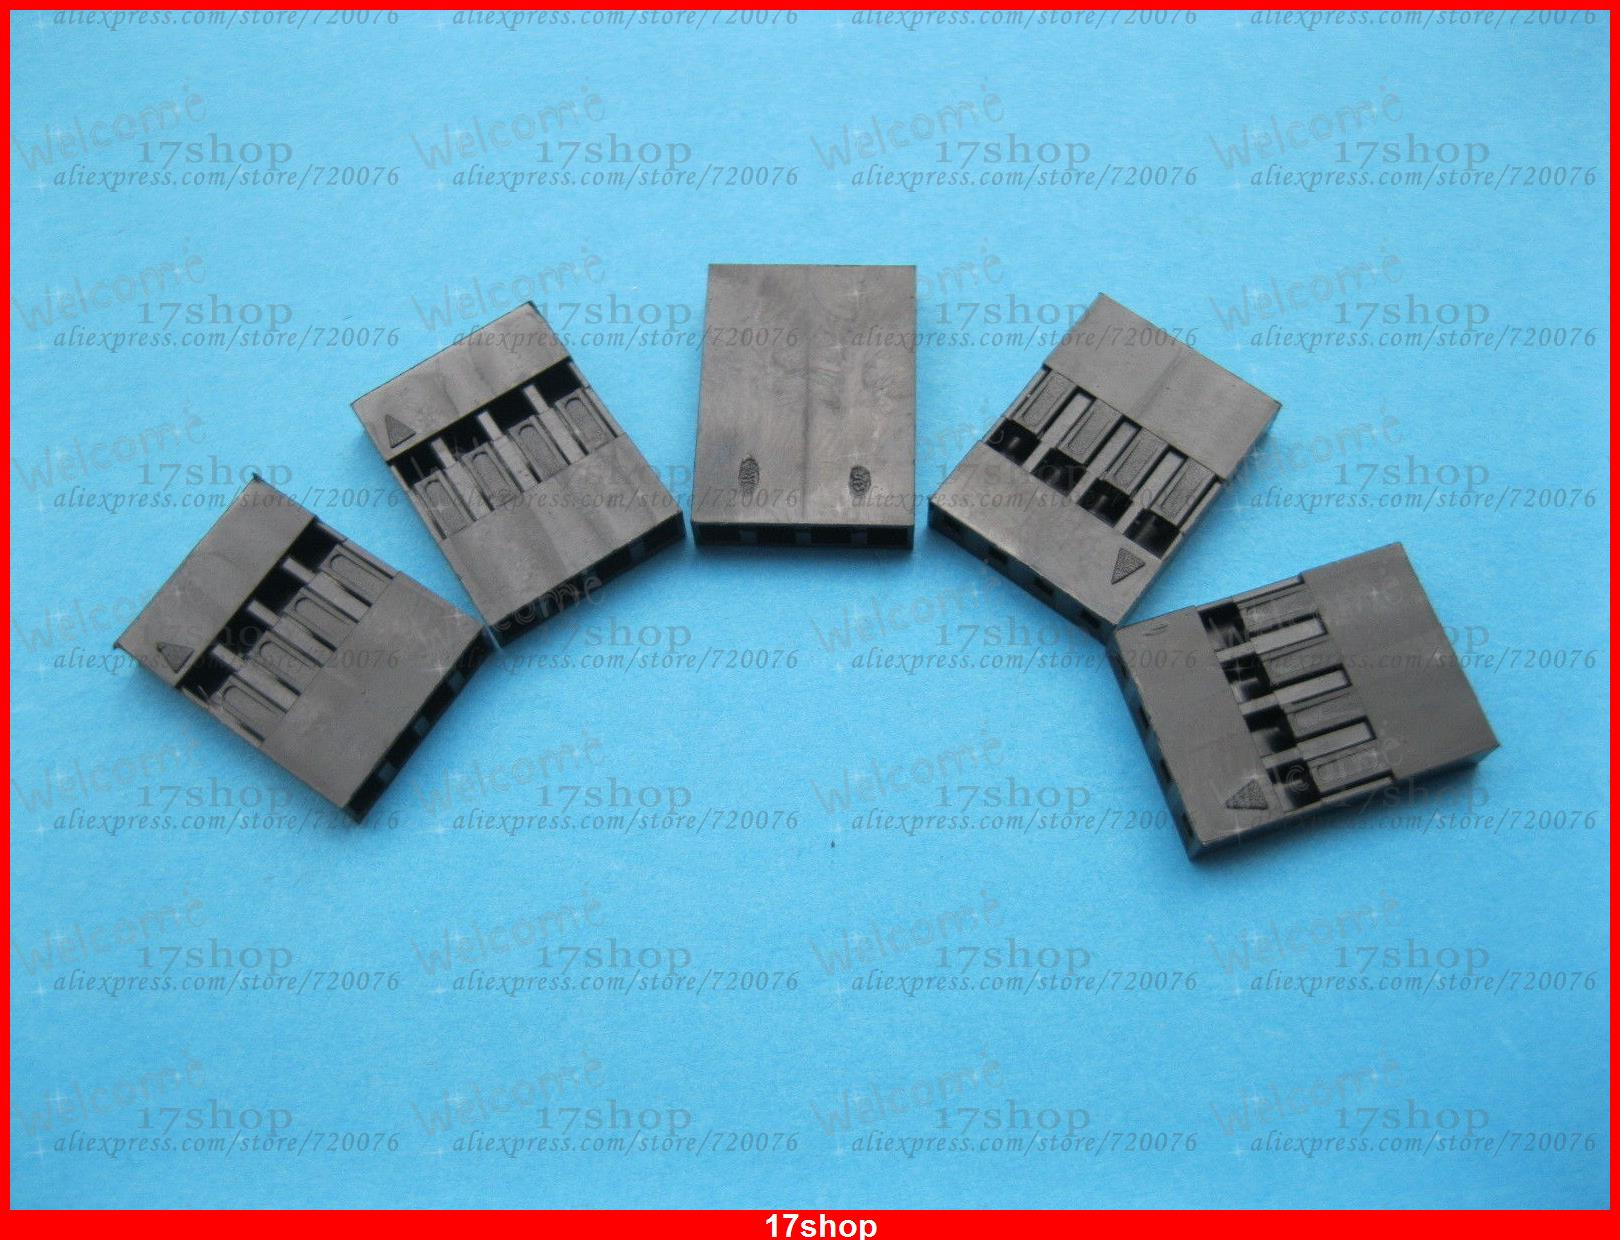 400 pcs Jumper Wire Female Housing 4 Pin Connector Pitch 2.54mm Black Color